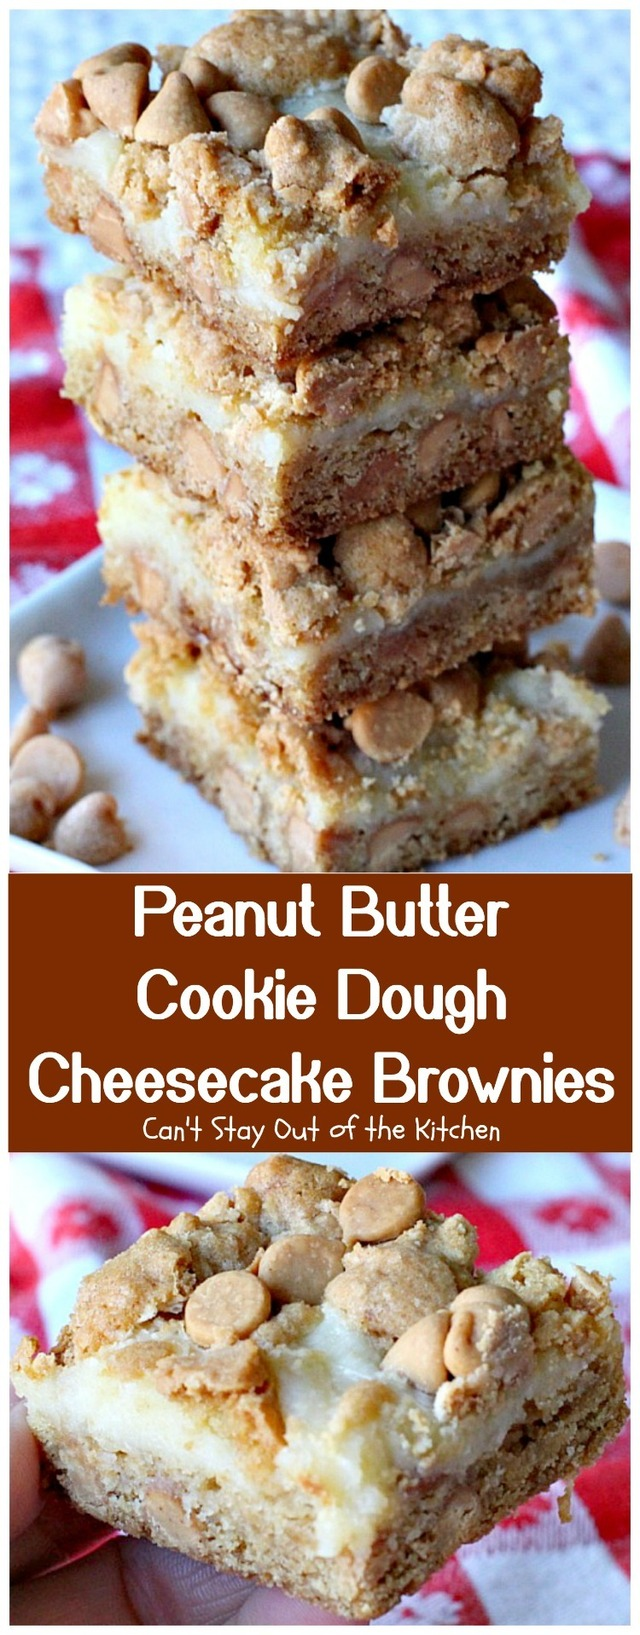 Peanut Butter Cookie Dough Cheesecake Brownies